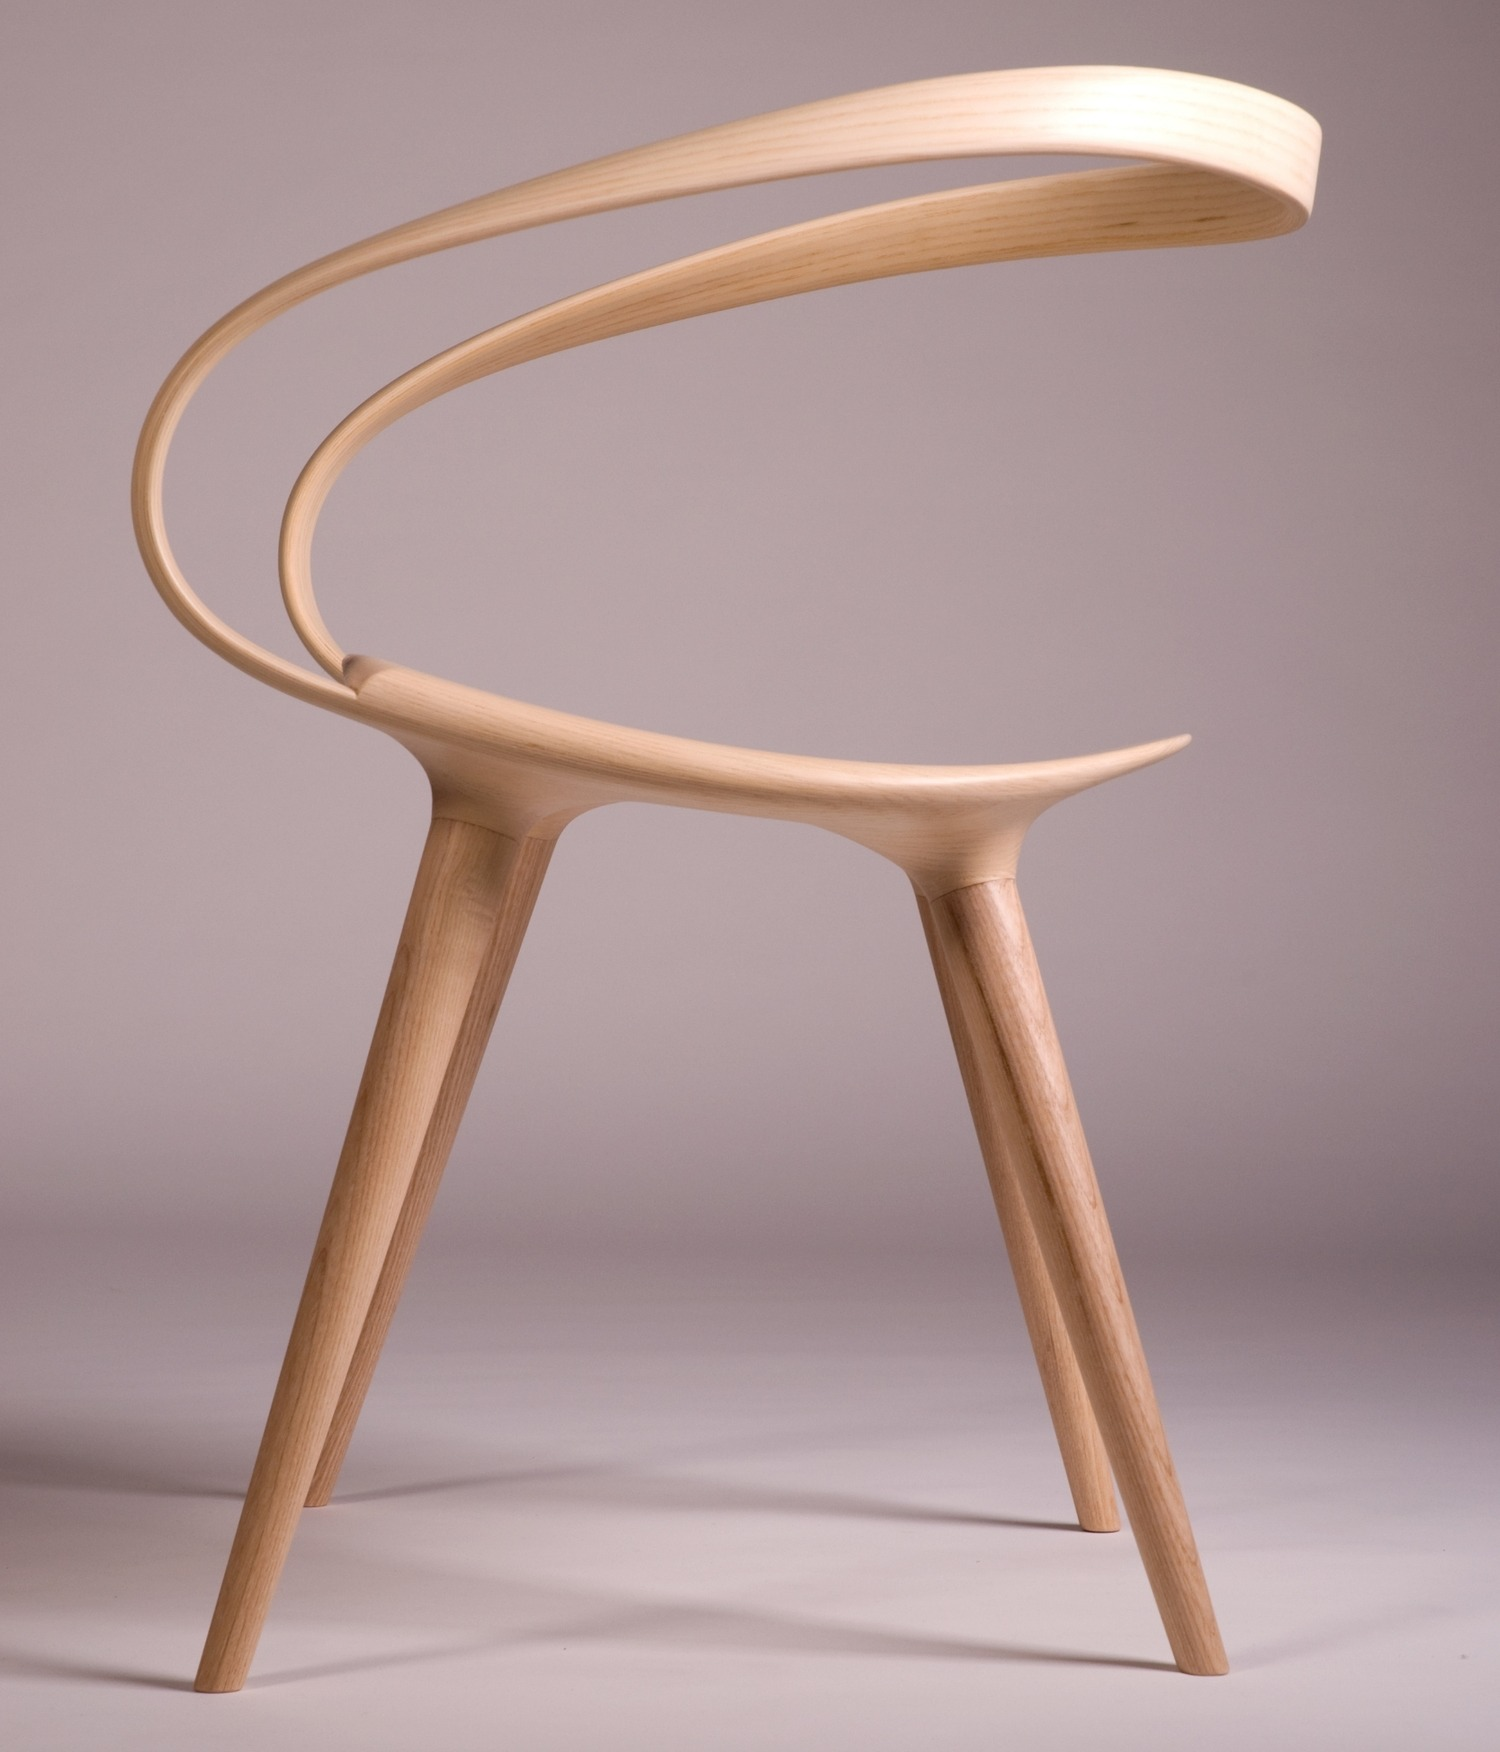 Bent Plywood Chair - 02 velo side